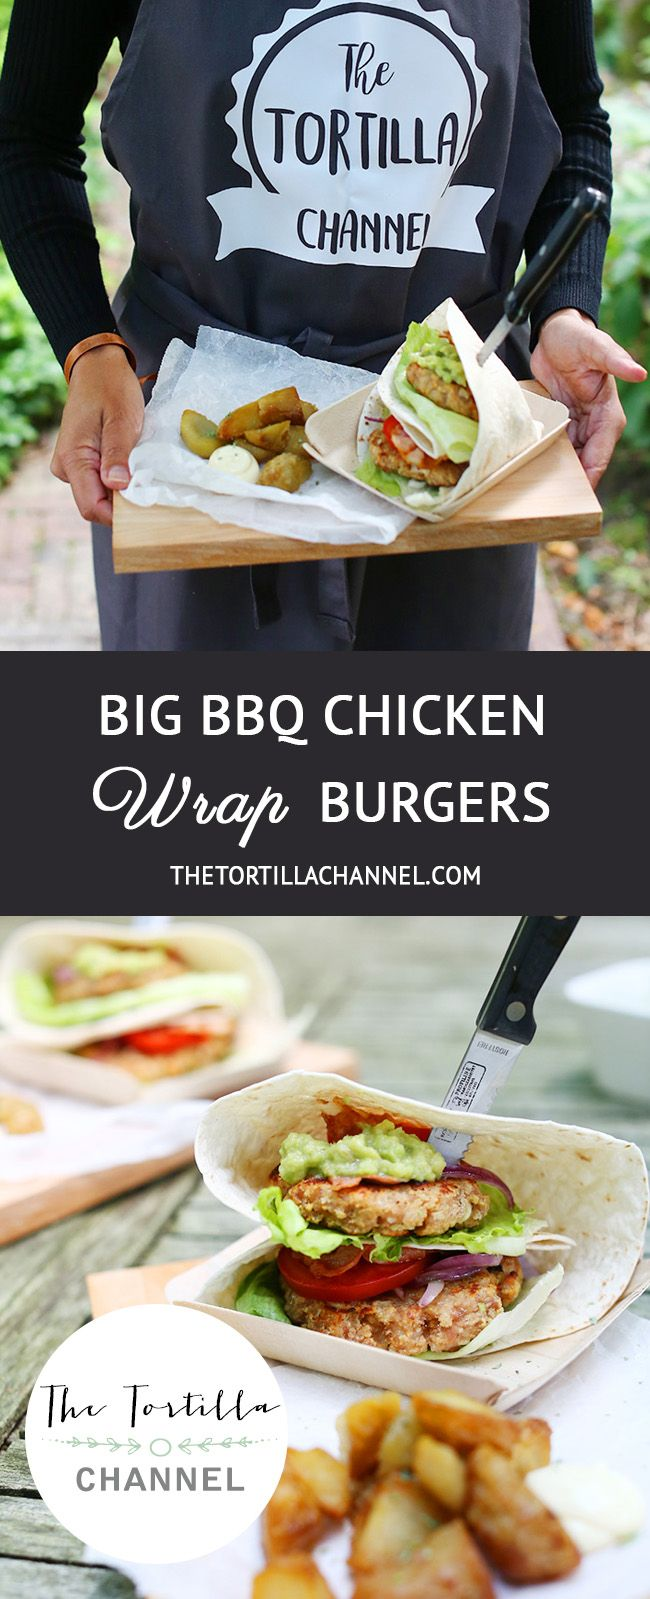 Lets go outside! The sun is shining, birds are singing and its time for a BBQ. To honour Summer we're making Big BBQ Chicken Wrap burgers. #summer #bbq #thetortilachannel #tortilla #burger #grill